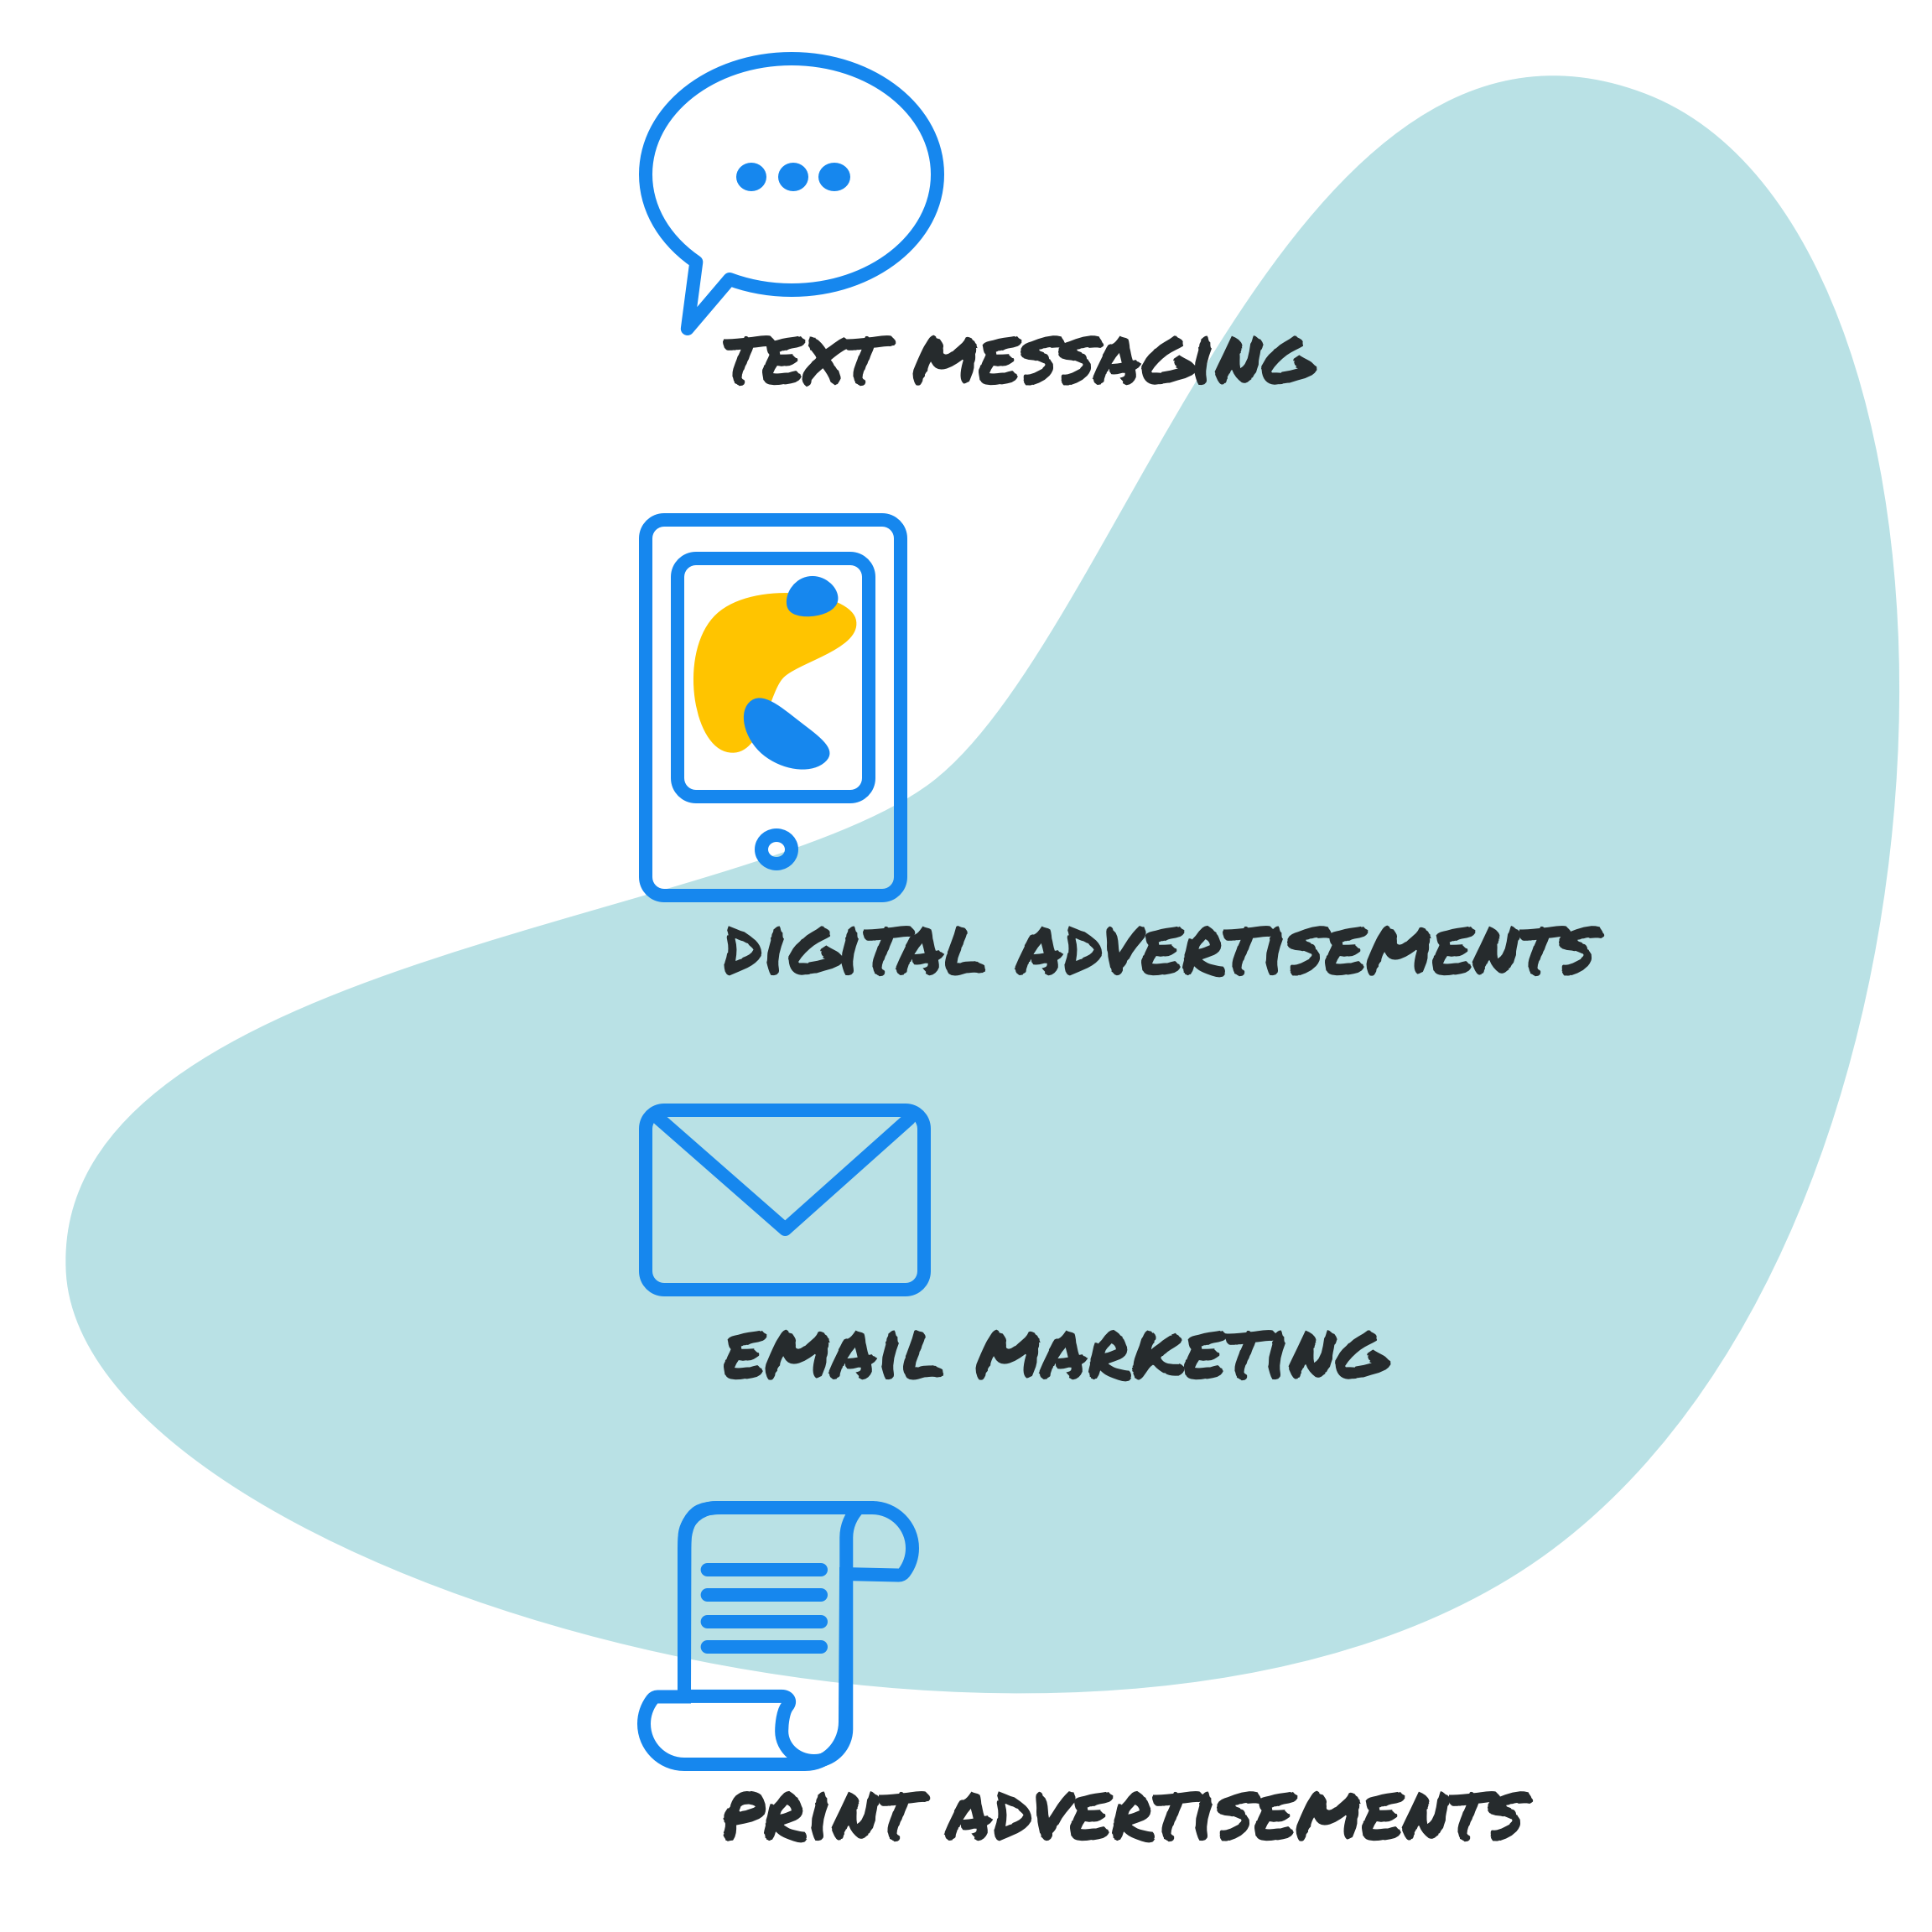 Examples of text messaging, digital advertisements, email marketing, and print advertisements